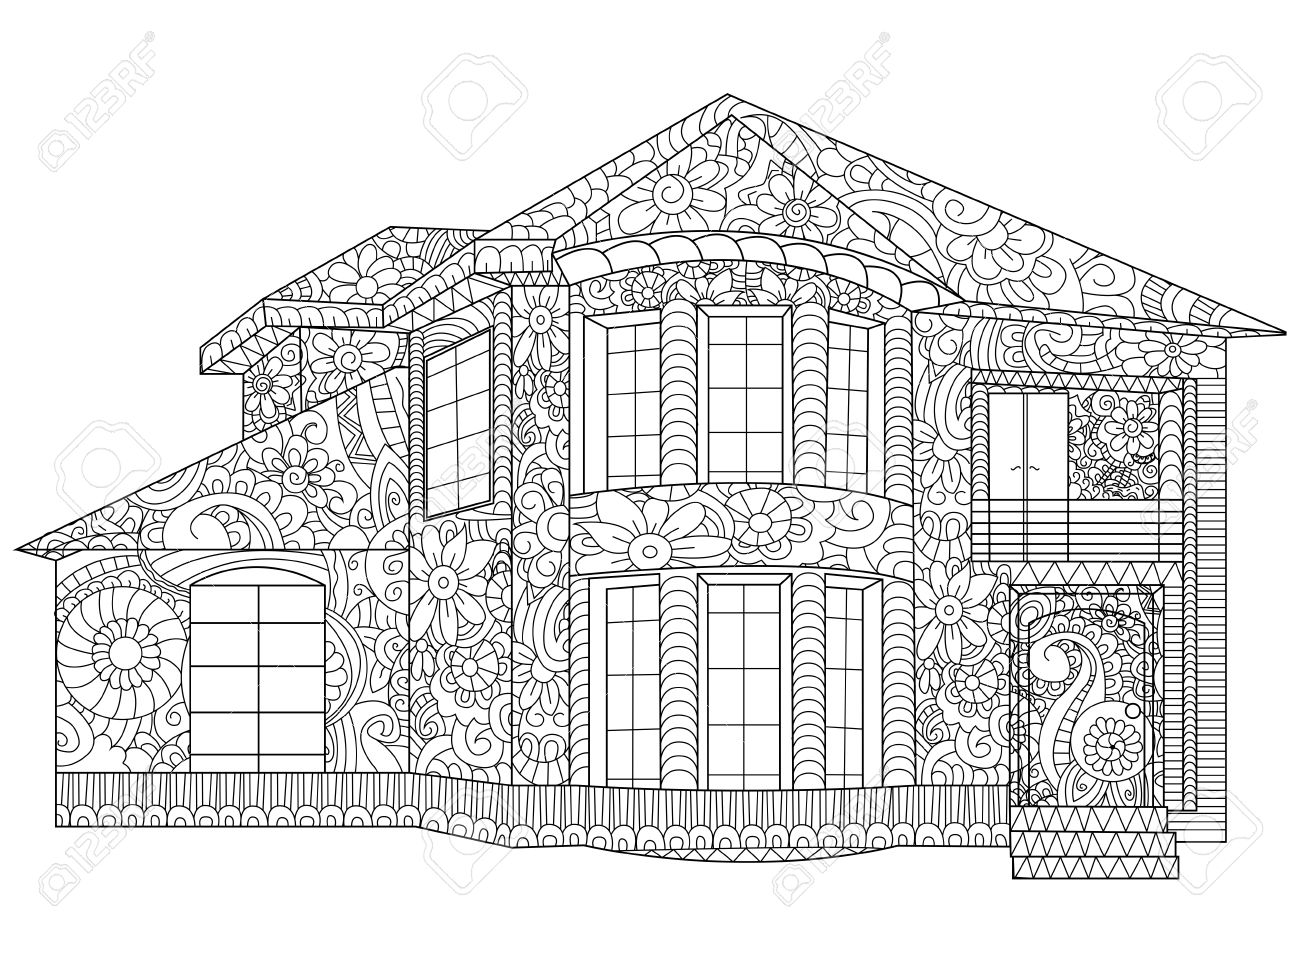 Two-storey House Coloring Book Illustration. Anti-stress Coloring ...